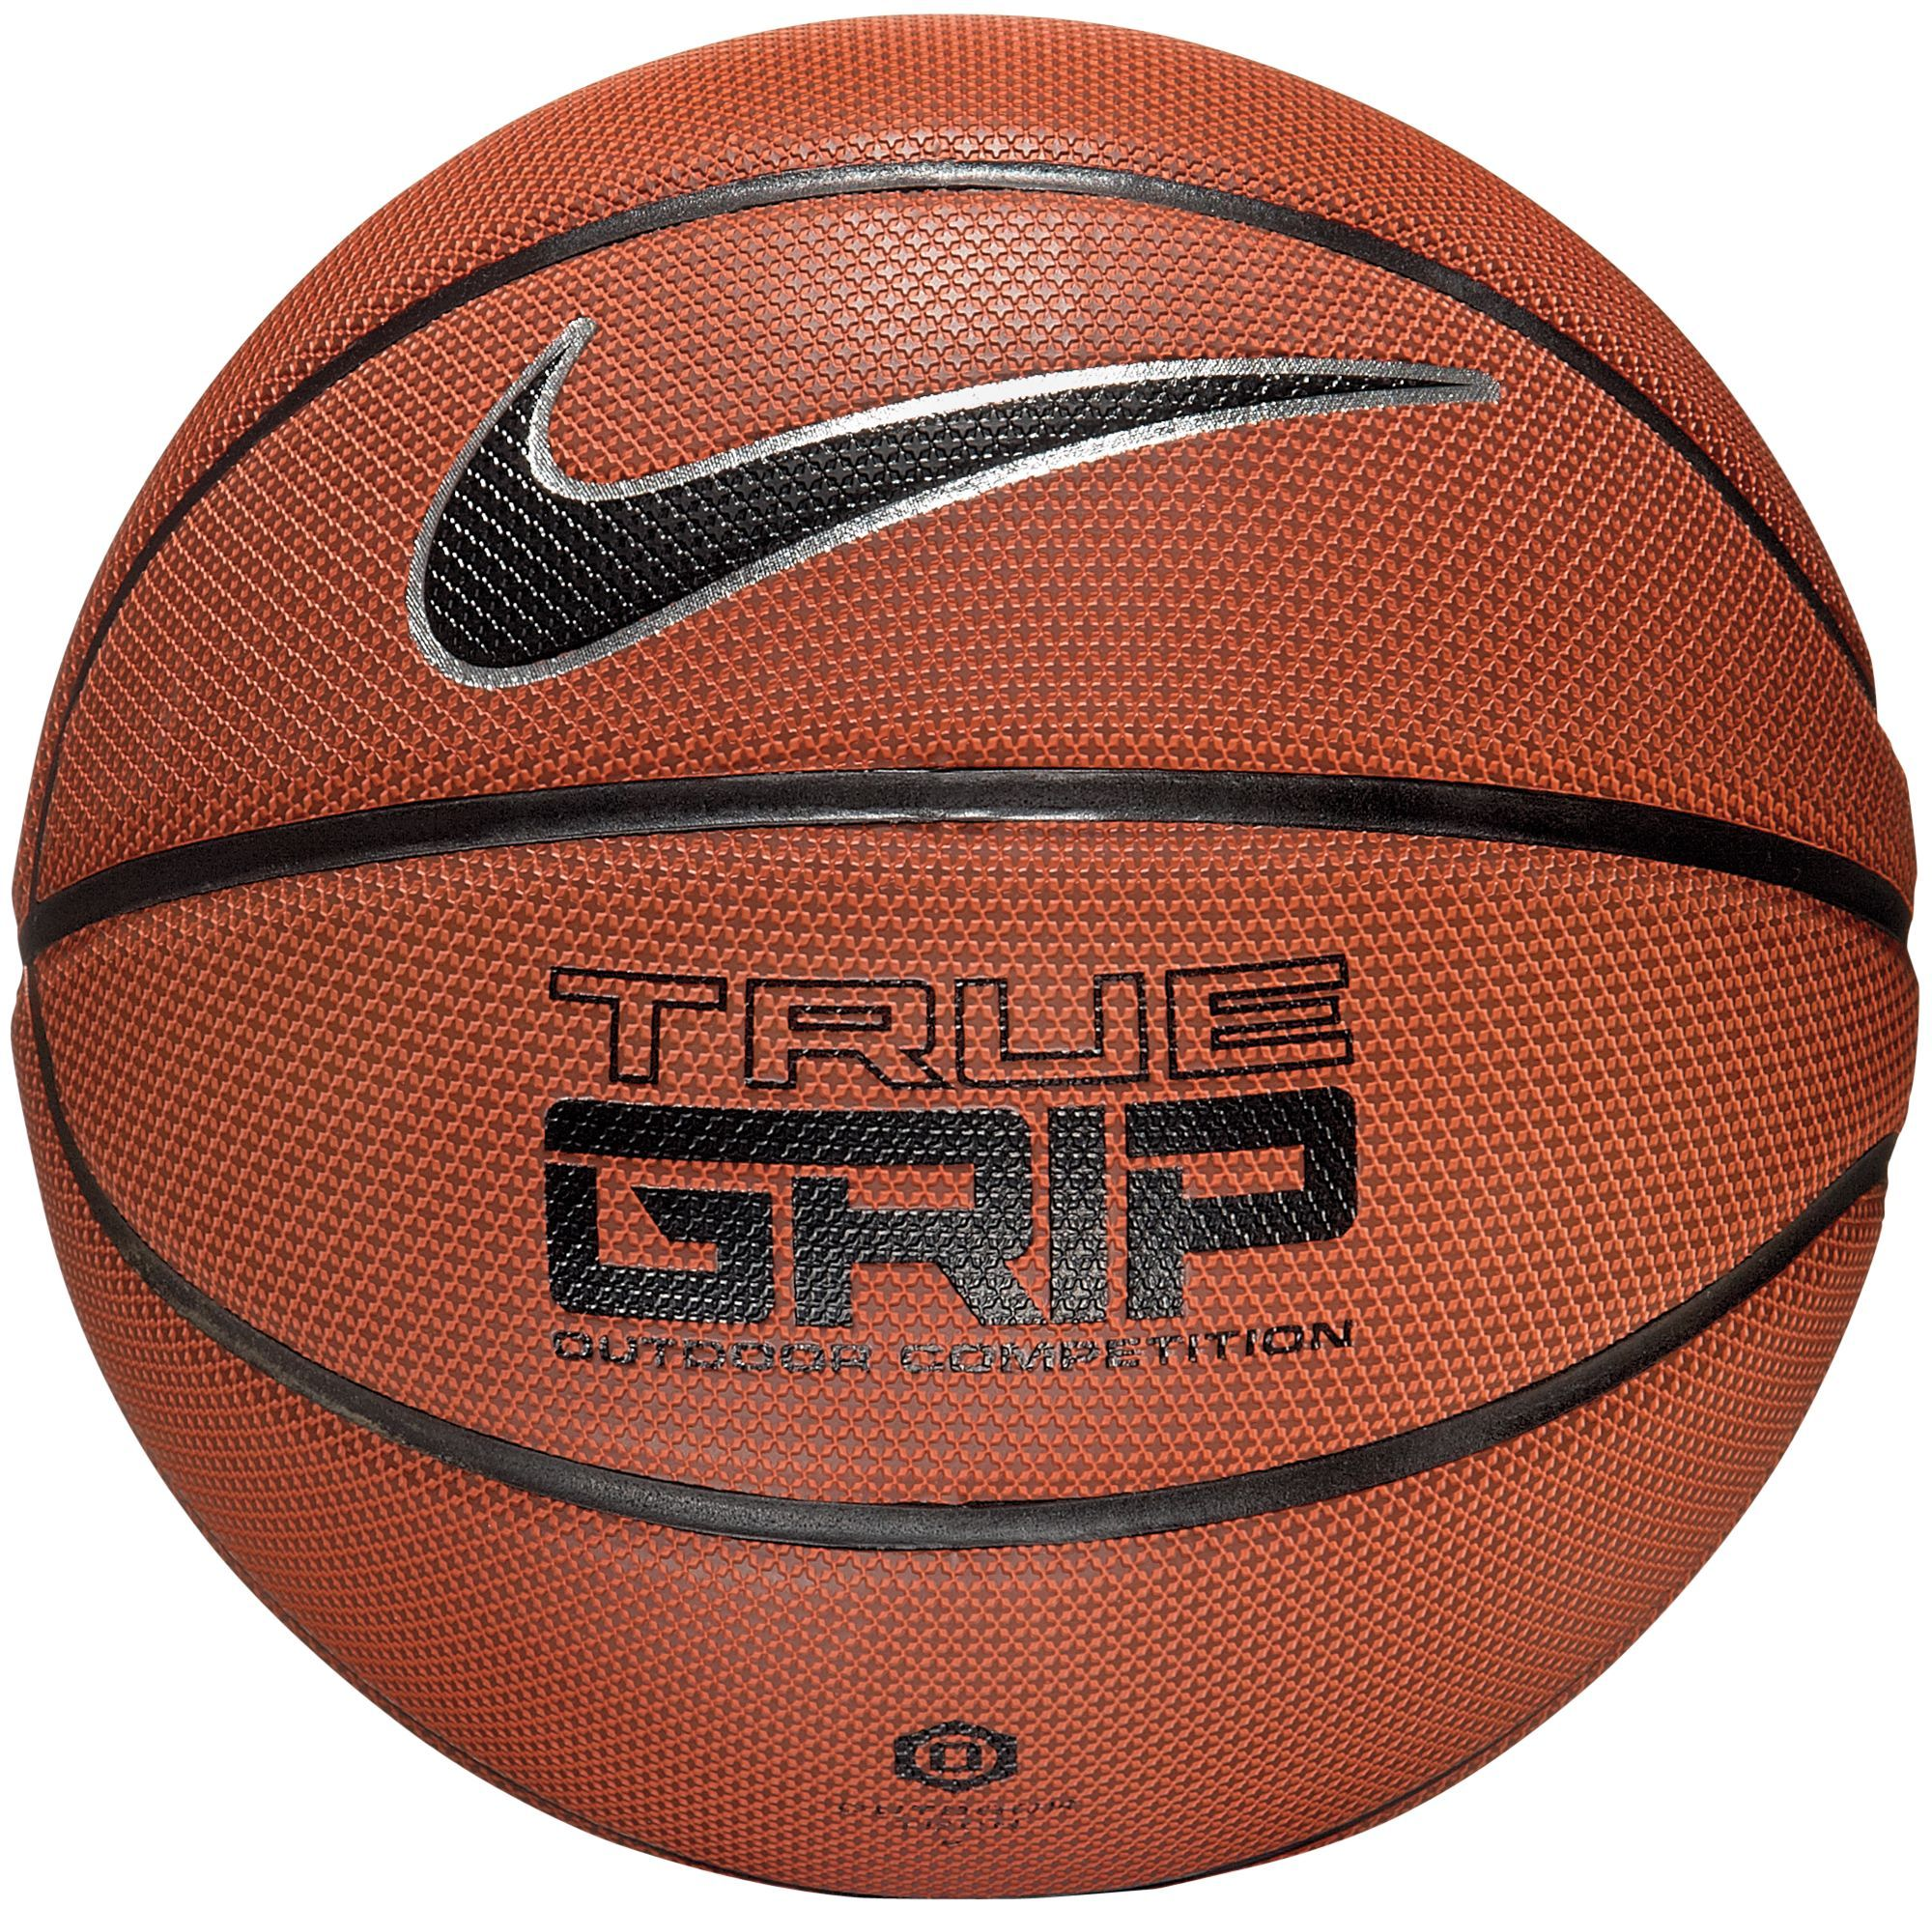 c94fbef7049 Nike True Grip Official Basketball (29.5